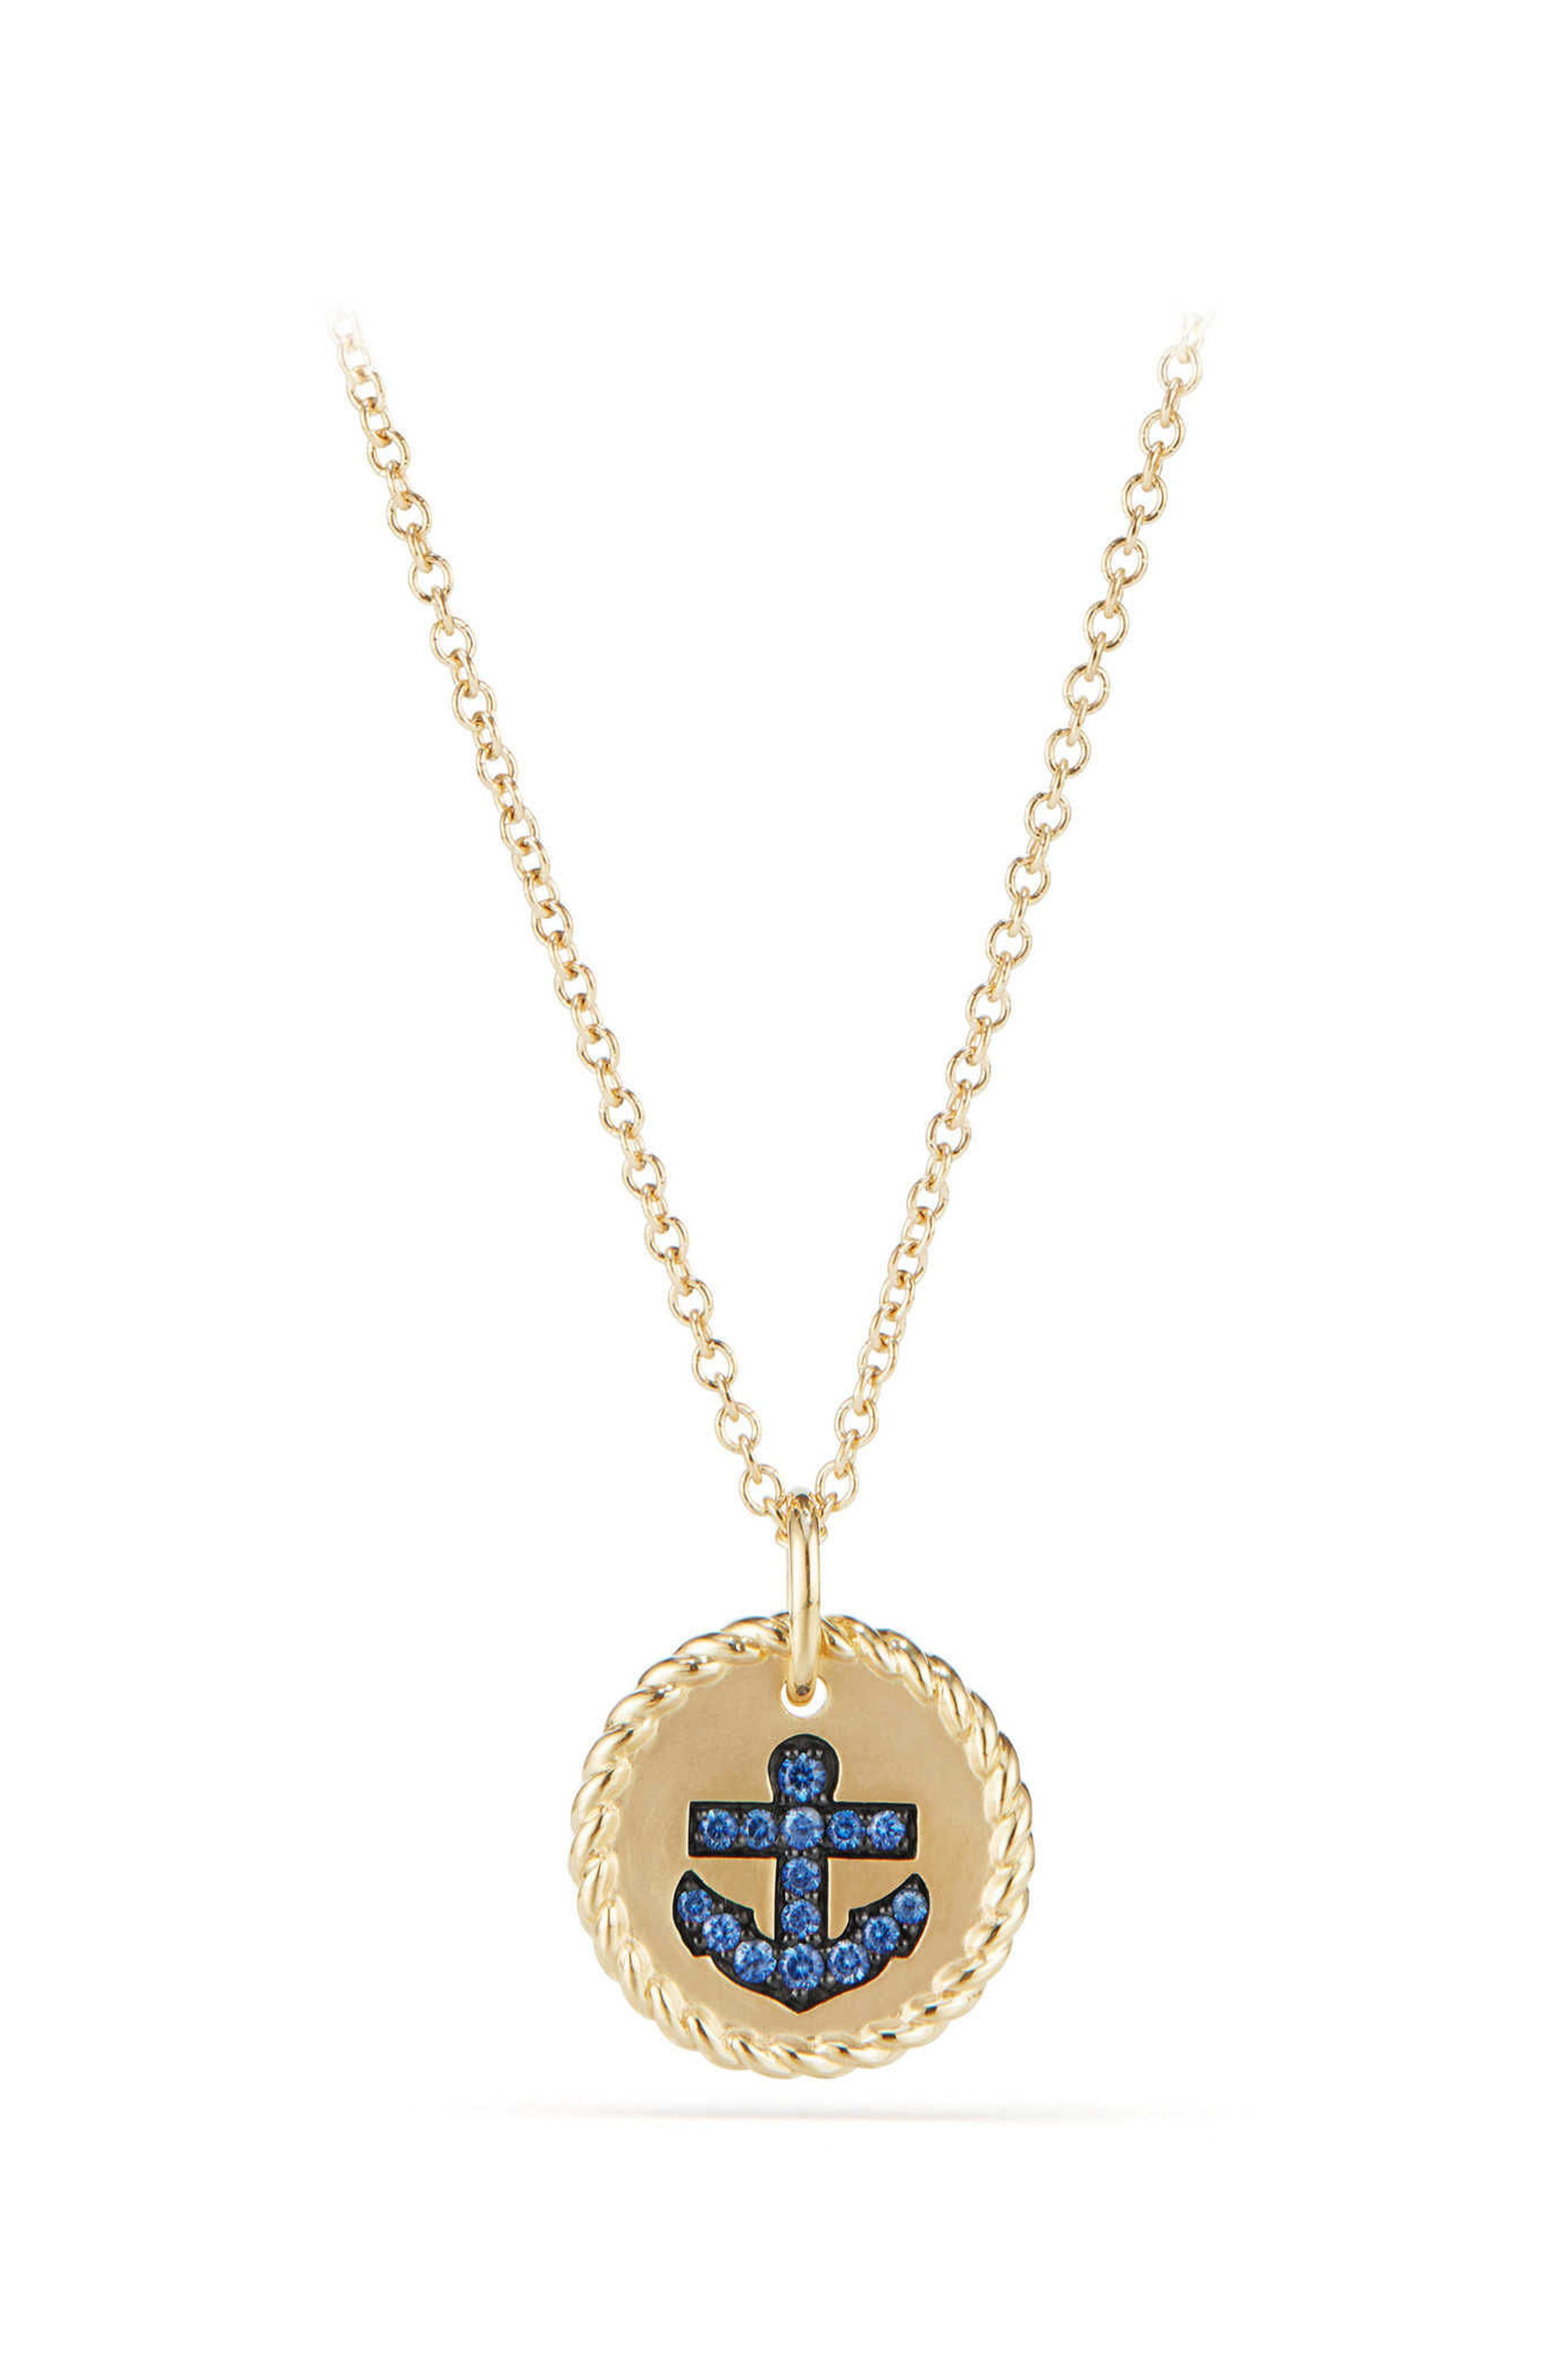 Cable Collectibles Anchor Necklace with Light Blue Sapphires in 18K Gold,                         Main,                         color, GOLD/ LIGHT BLUE SAPPHIRE